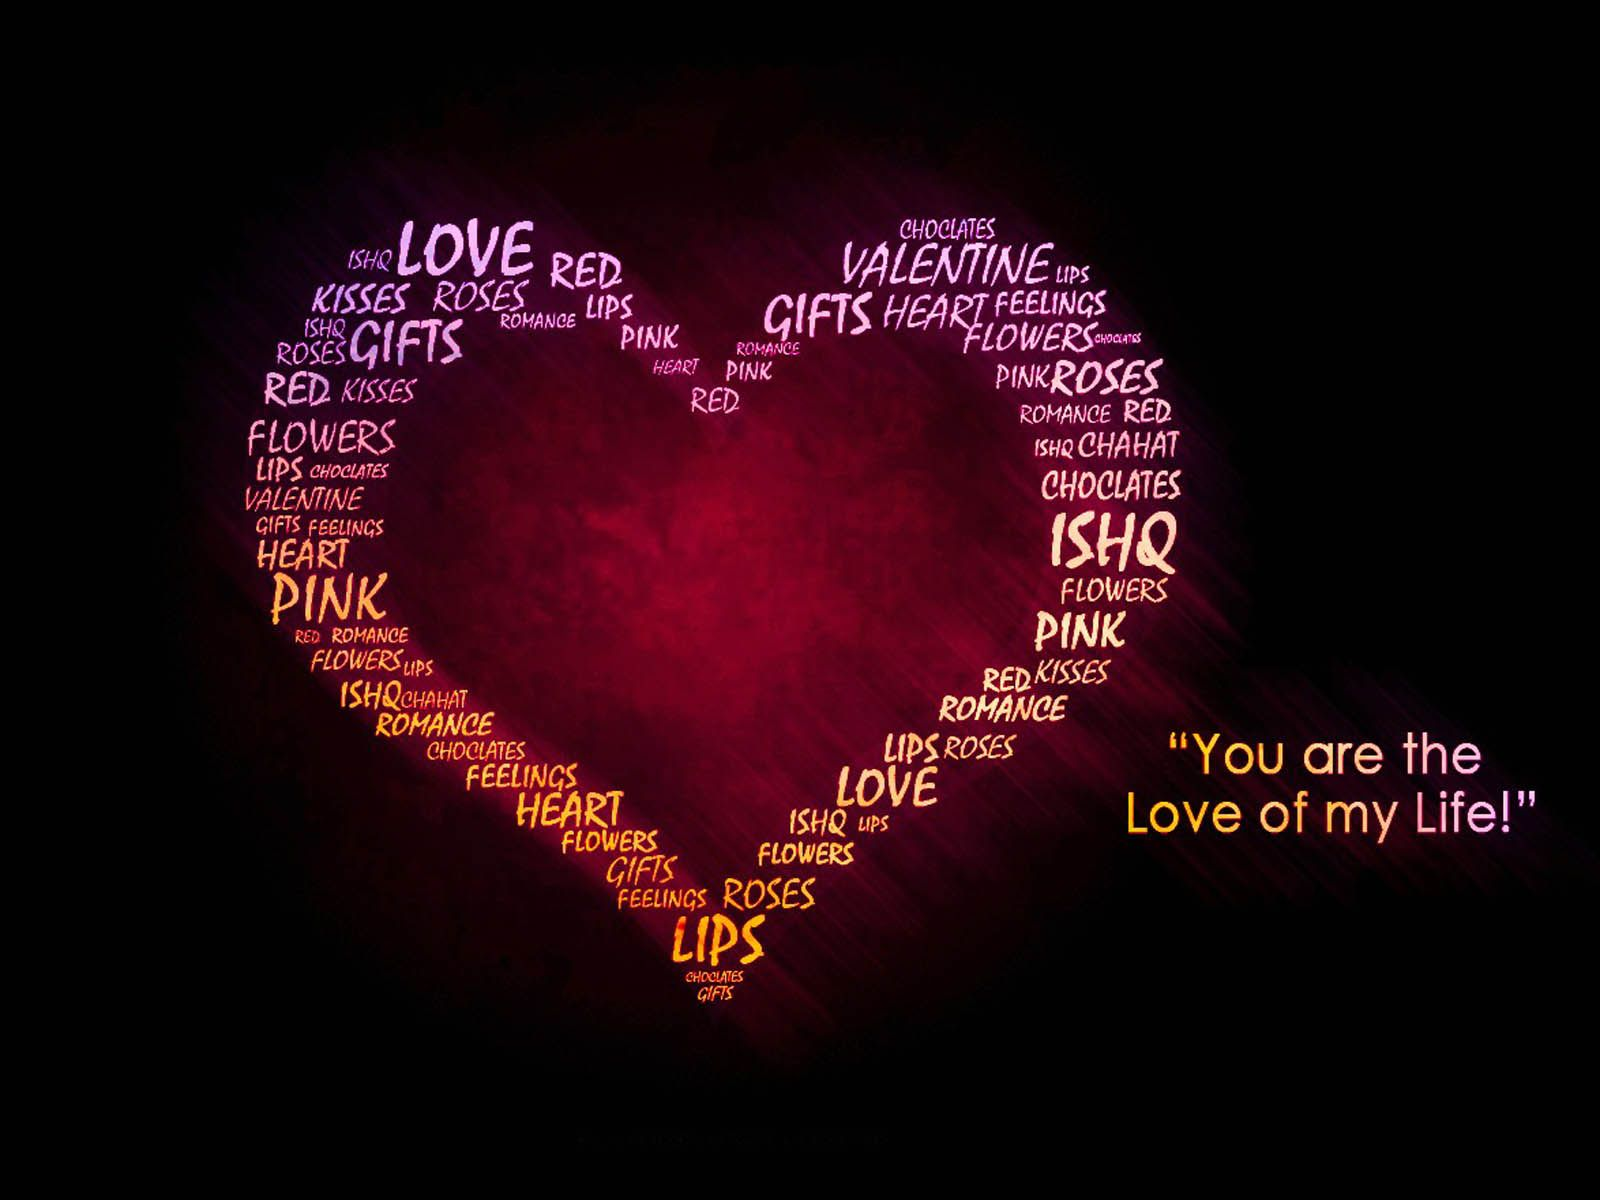 Lovequotes Desktop Wallpapers Cute Love Quotes Wallpaper Hd